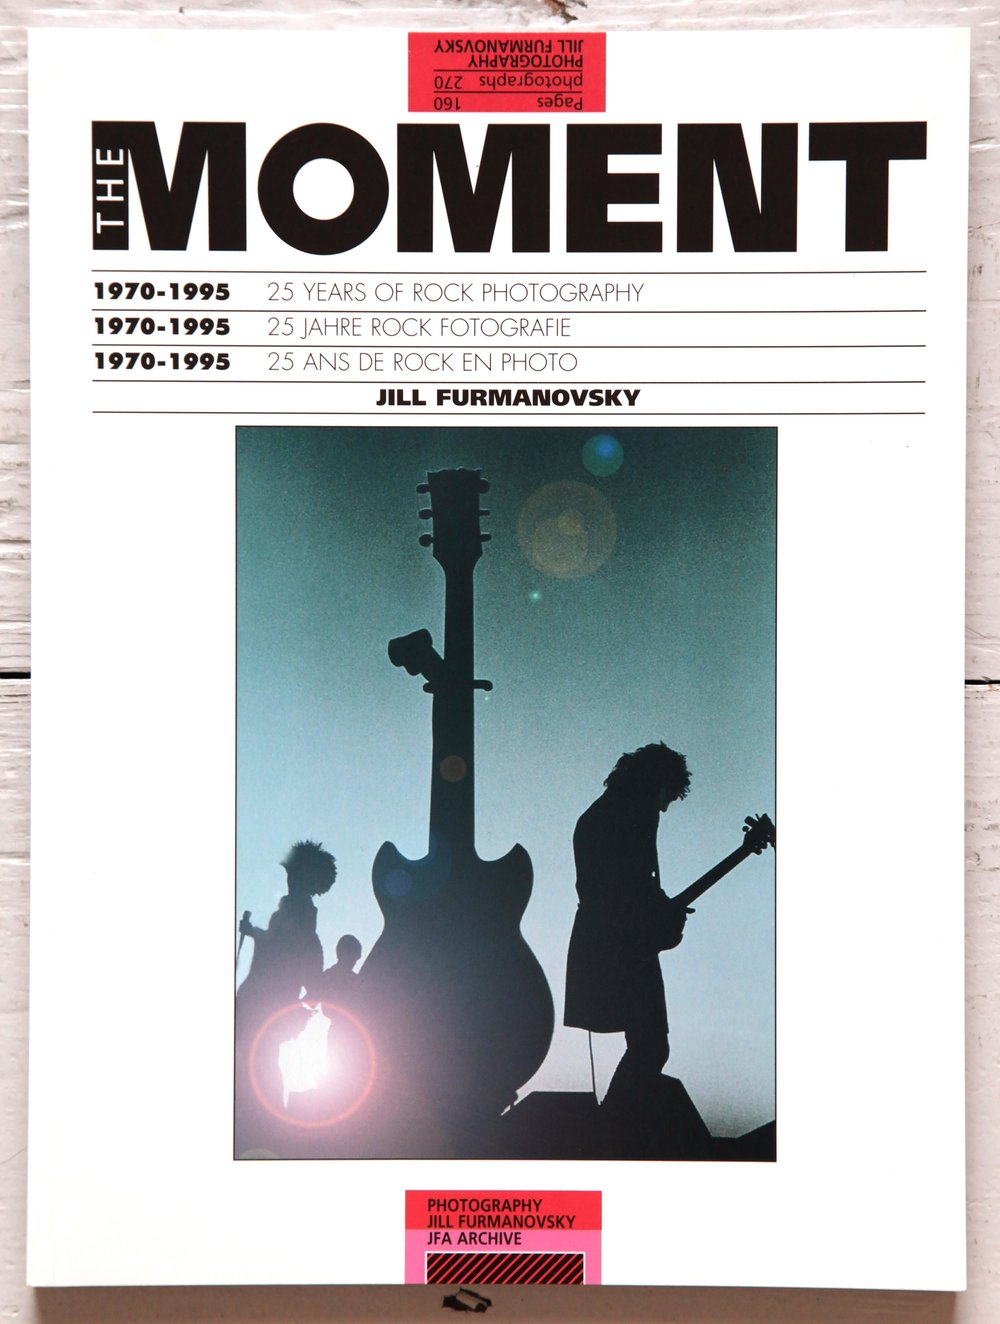 £70 Signed copy of Jill Furmanovsky's 'Moment'. First edition. Published by Dragon's World Ltd, Limpsfield (1995). Soft cover. - An anthology marking the first 25 years of Jill Furmanovsky's illustrious career as one of the world's leading music photographers. Iconic live shots and images taken off-stage of all the greats; from Yes to Oasis, Led Zeppelin to the Sex Pistols, accompanied by personal anecdotes. This signed book is one of the last remaining new copies.